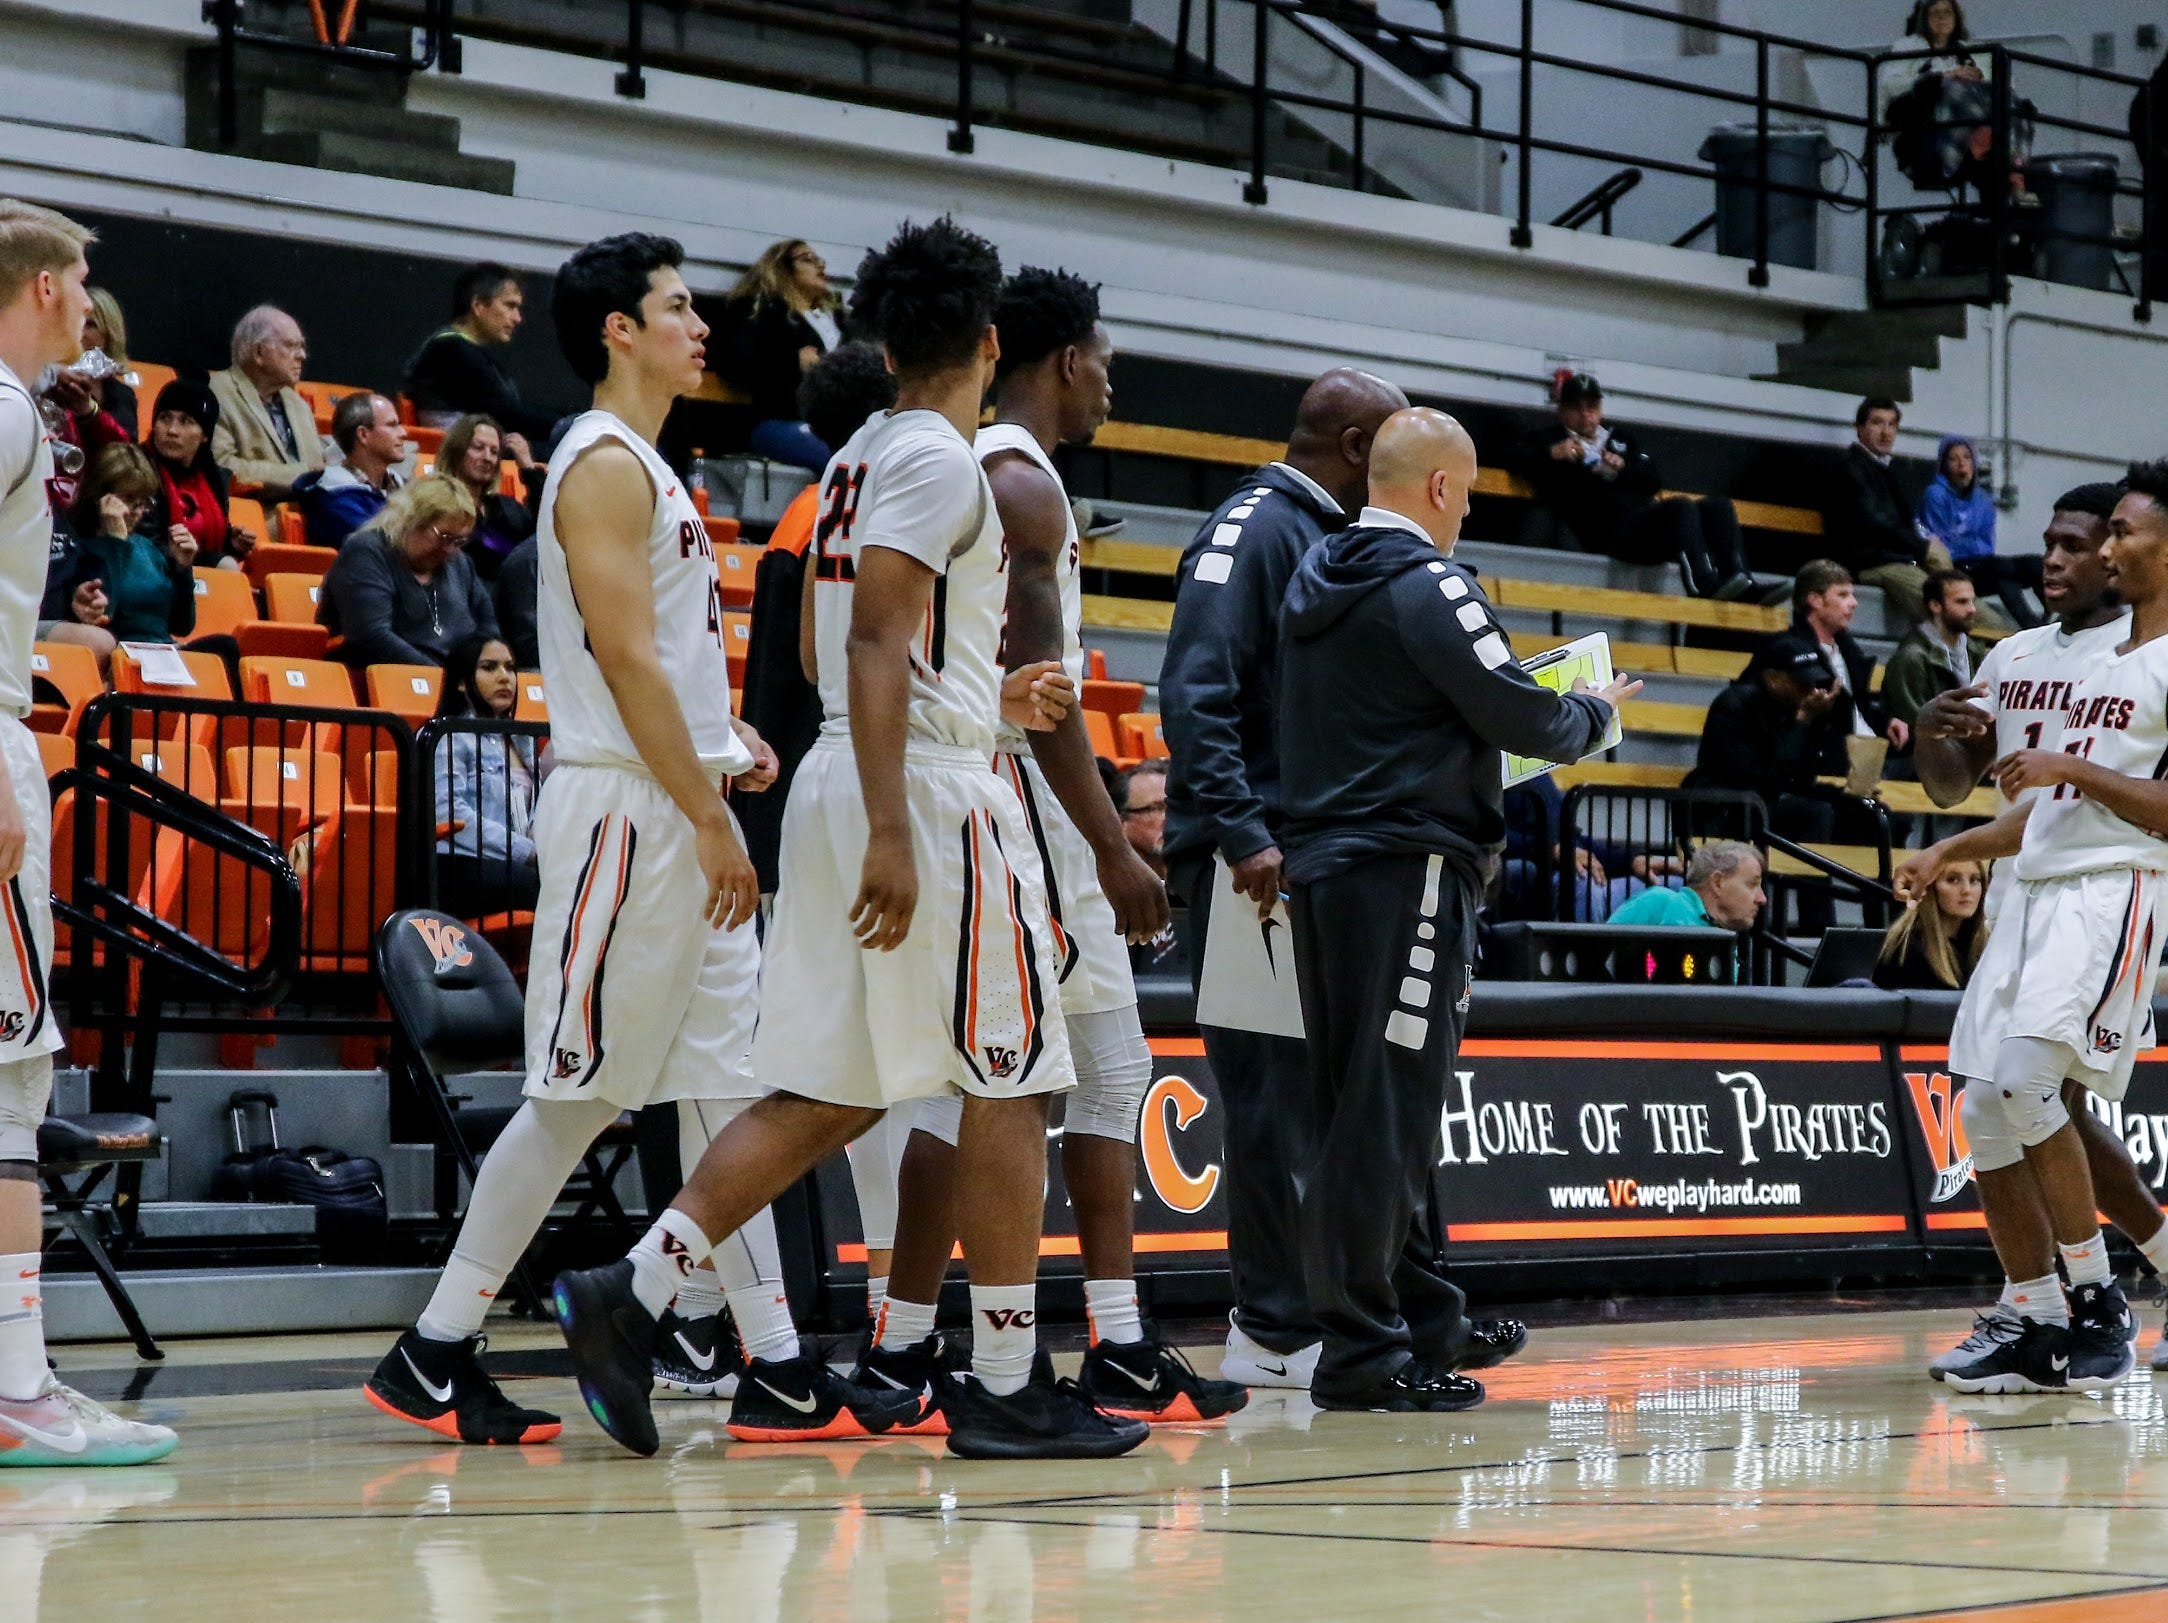 The Ventura College men's basketball team takes the floor against Los Angeles Valley on Wednesday night in the CCCAA Southern California regional quarterfinals at the VC Athletic Event Center. L.A. Valley won, 78-74.